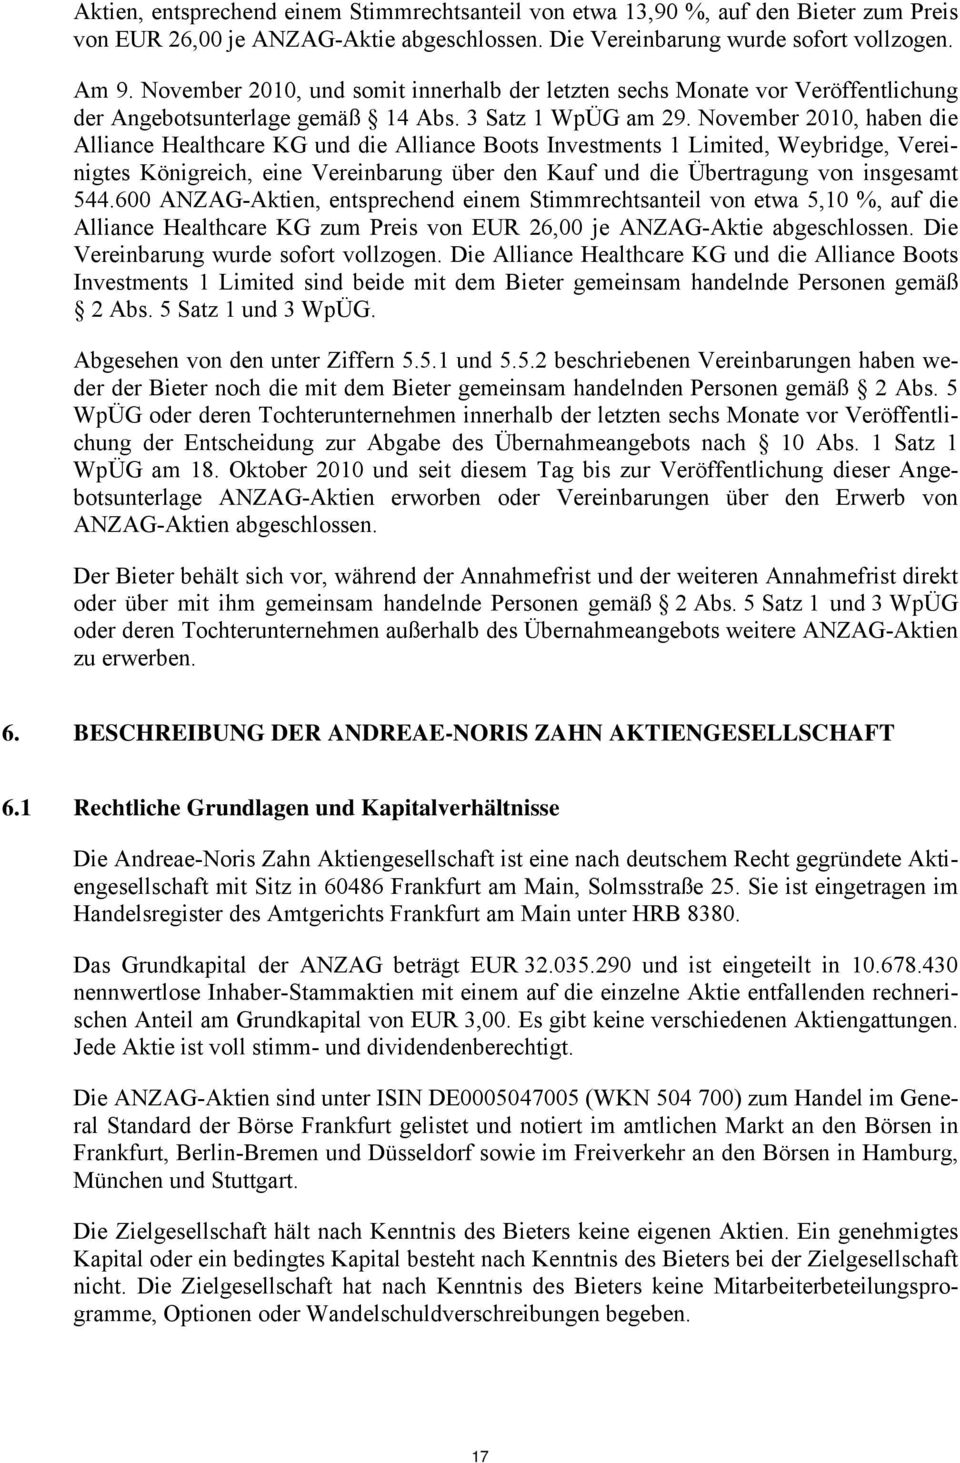 November 2010, haben die Alliance Healthcare KG und die Alliance Boots Investments 1 Limited, Weybridge, Vereinigtes Königreich, eine Vereinbarung über den Kauf und die Übertragung von insgesamt 544.